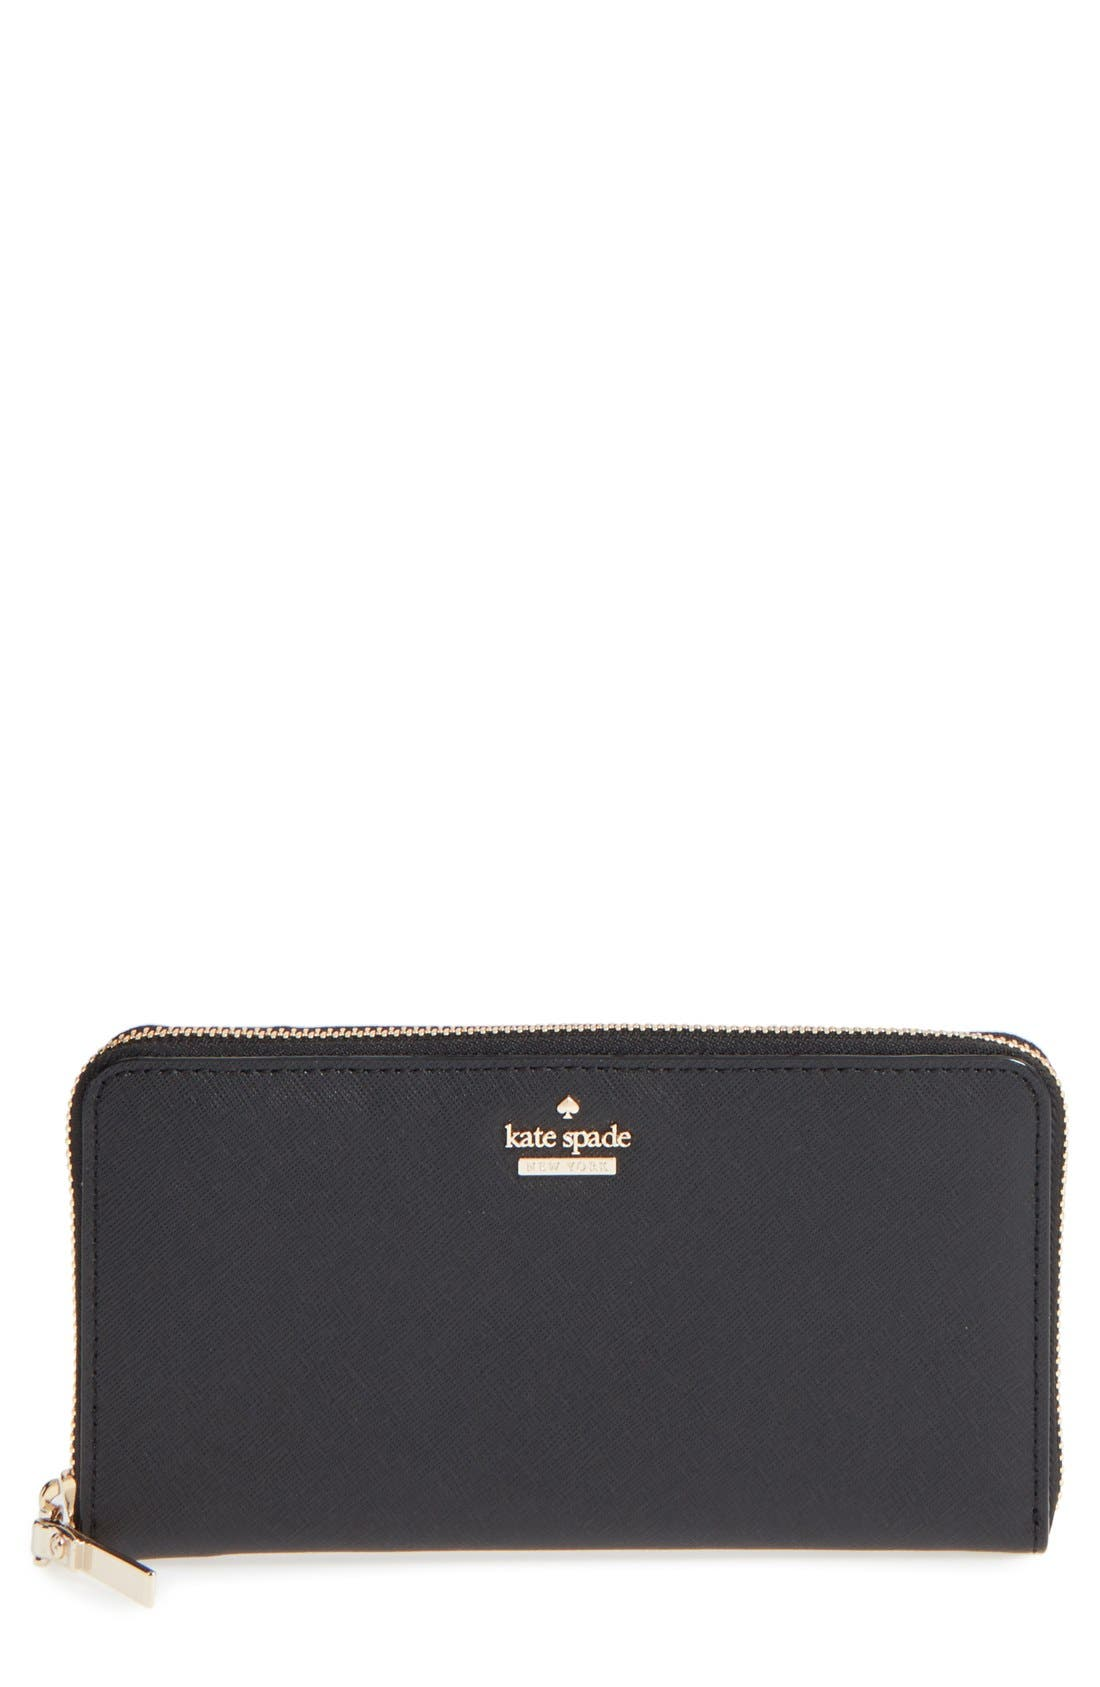 Main Image - kate spade new york 'cameron street - lacey' leather wallet